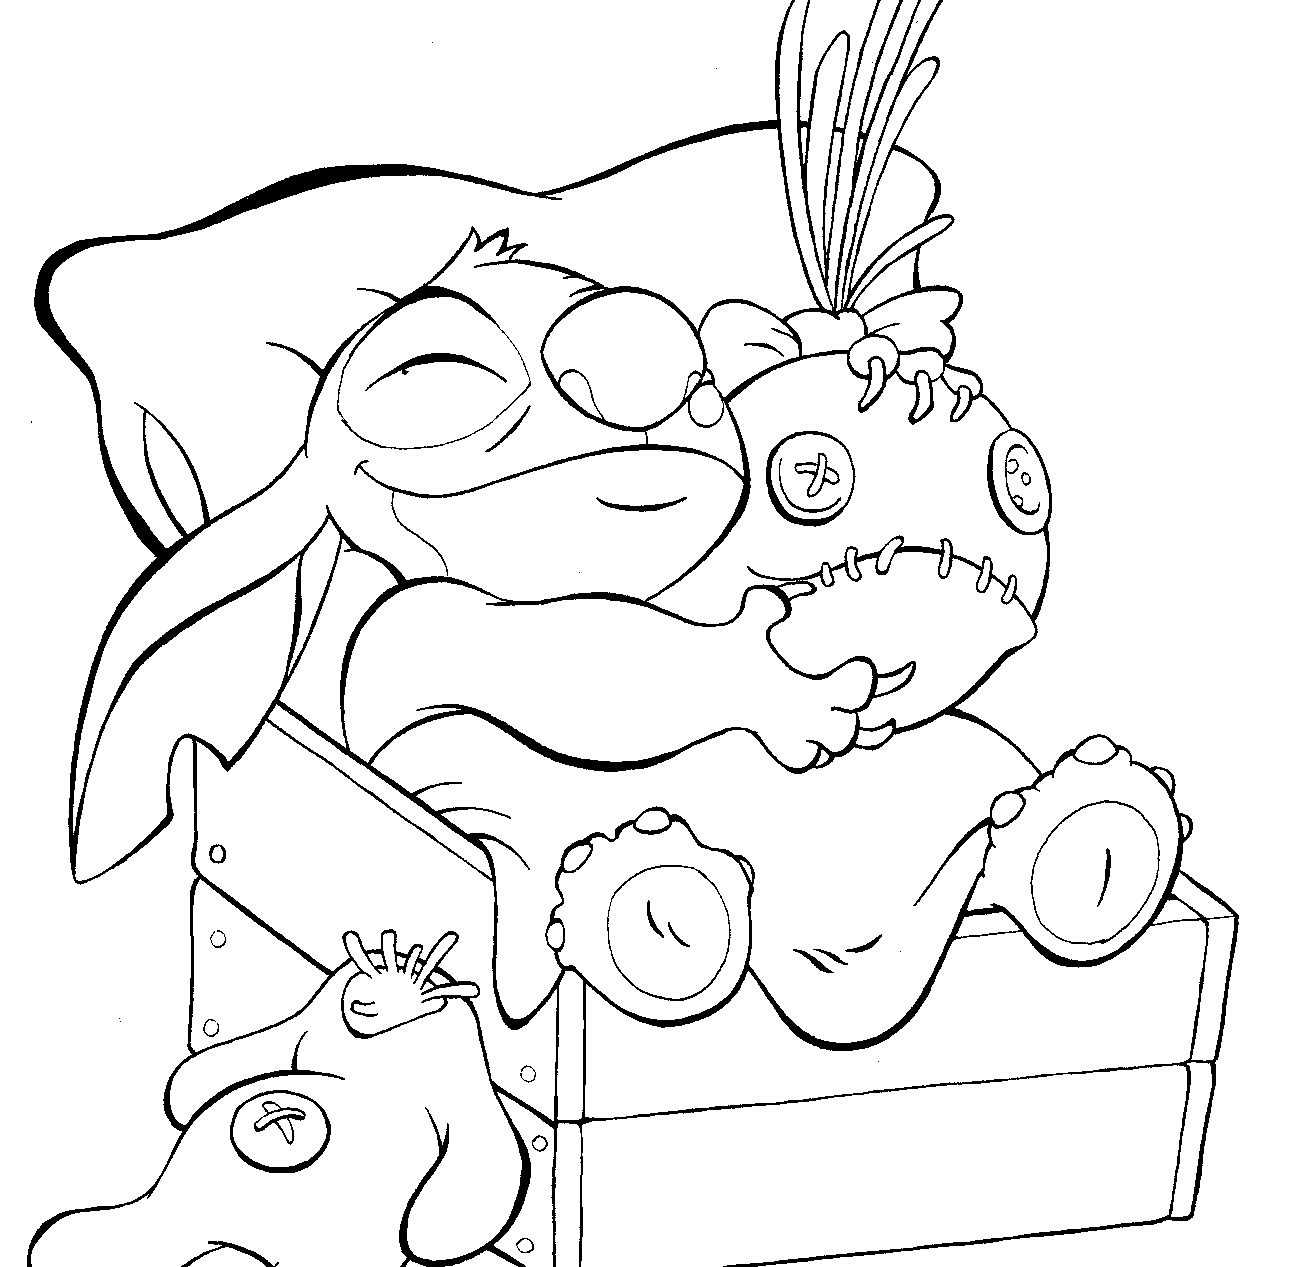 Free Printable Lilo And Stitch Coloring Pages For Kids Free Coloring Pictures To Print